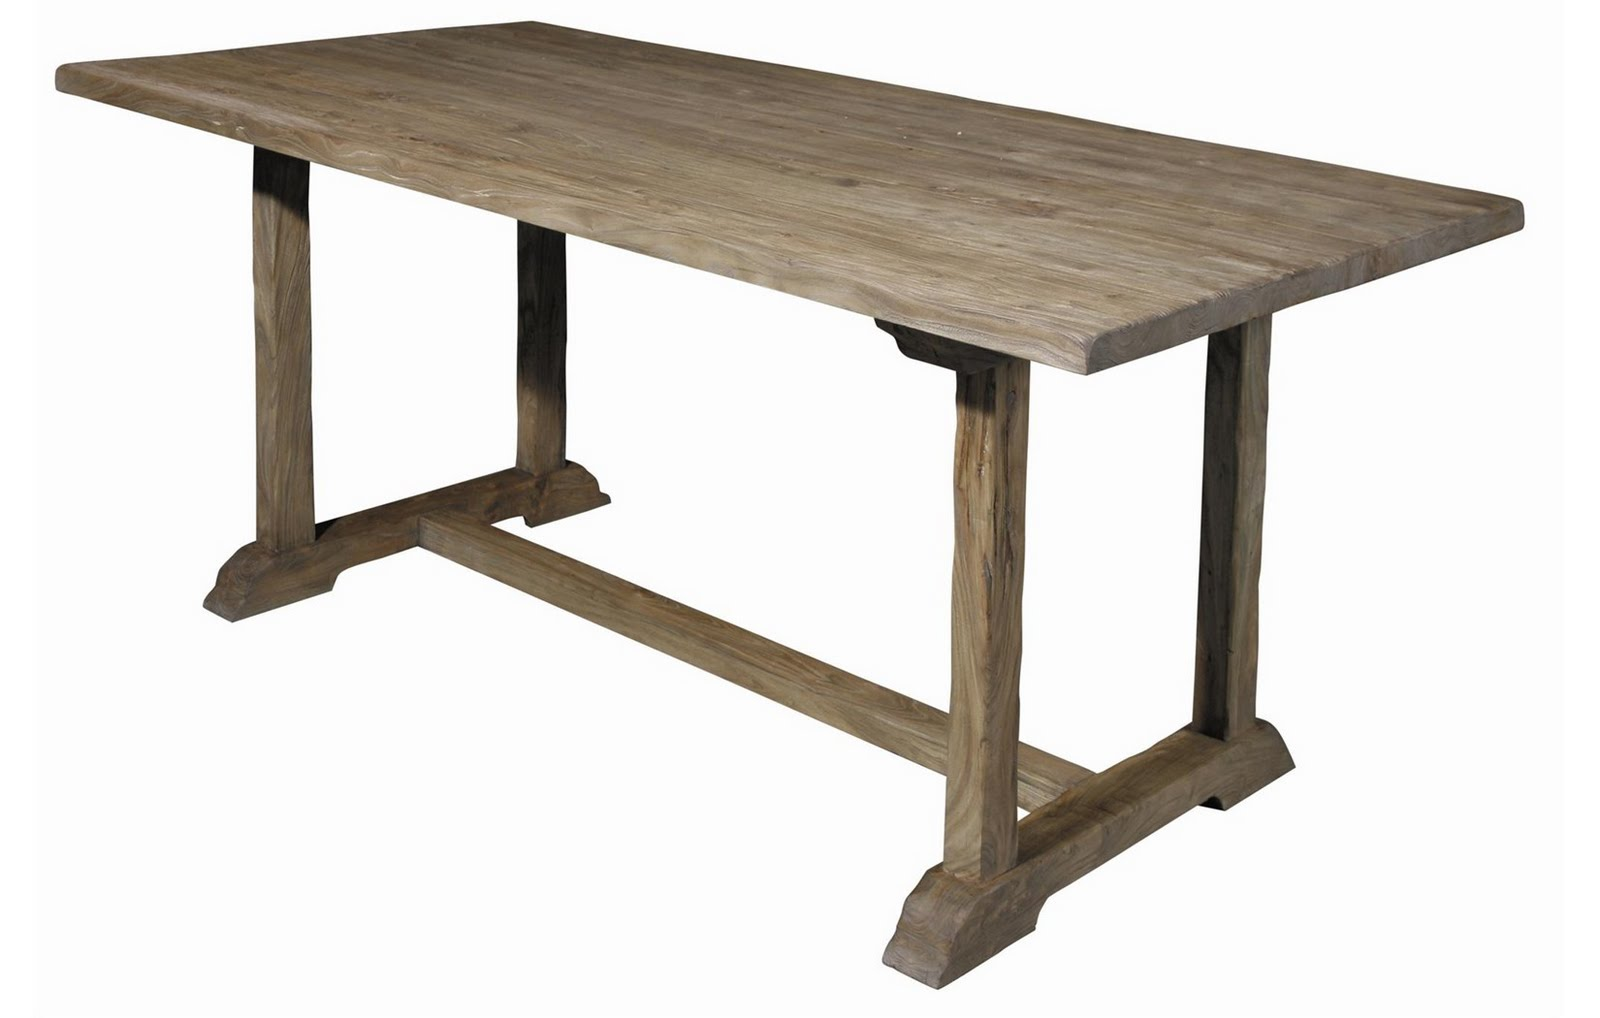 baby green Reclaimed Wood Dining Tables : oldelmtrestletable from babygreendesign.blogspot.com size 1600 x 1018 jpeg 95kB